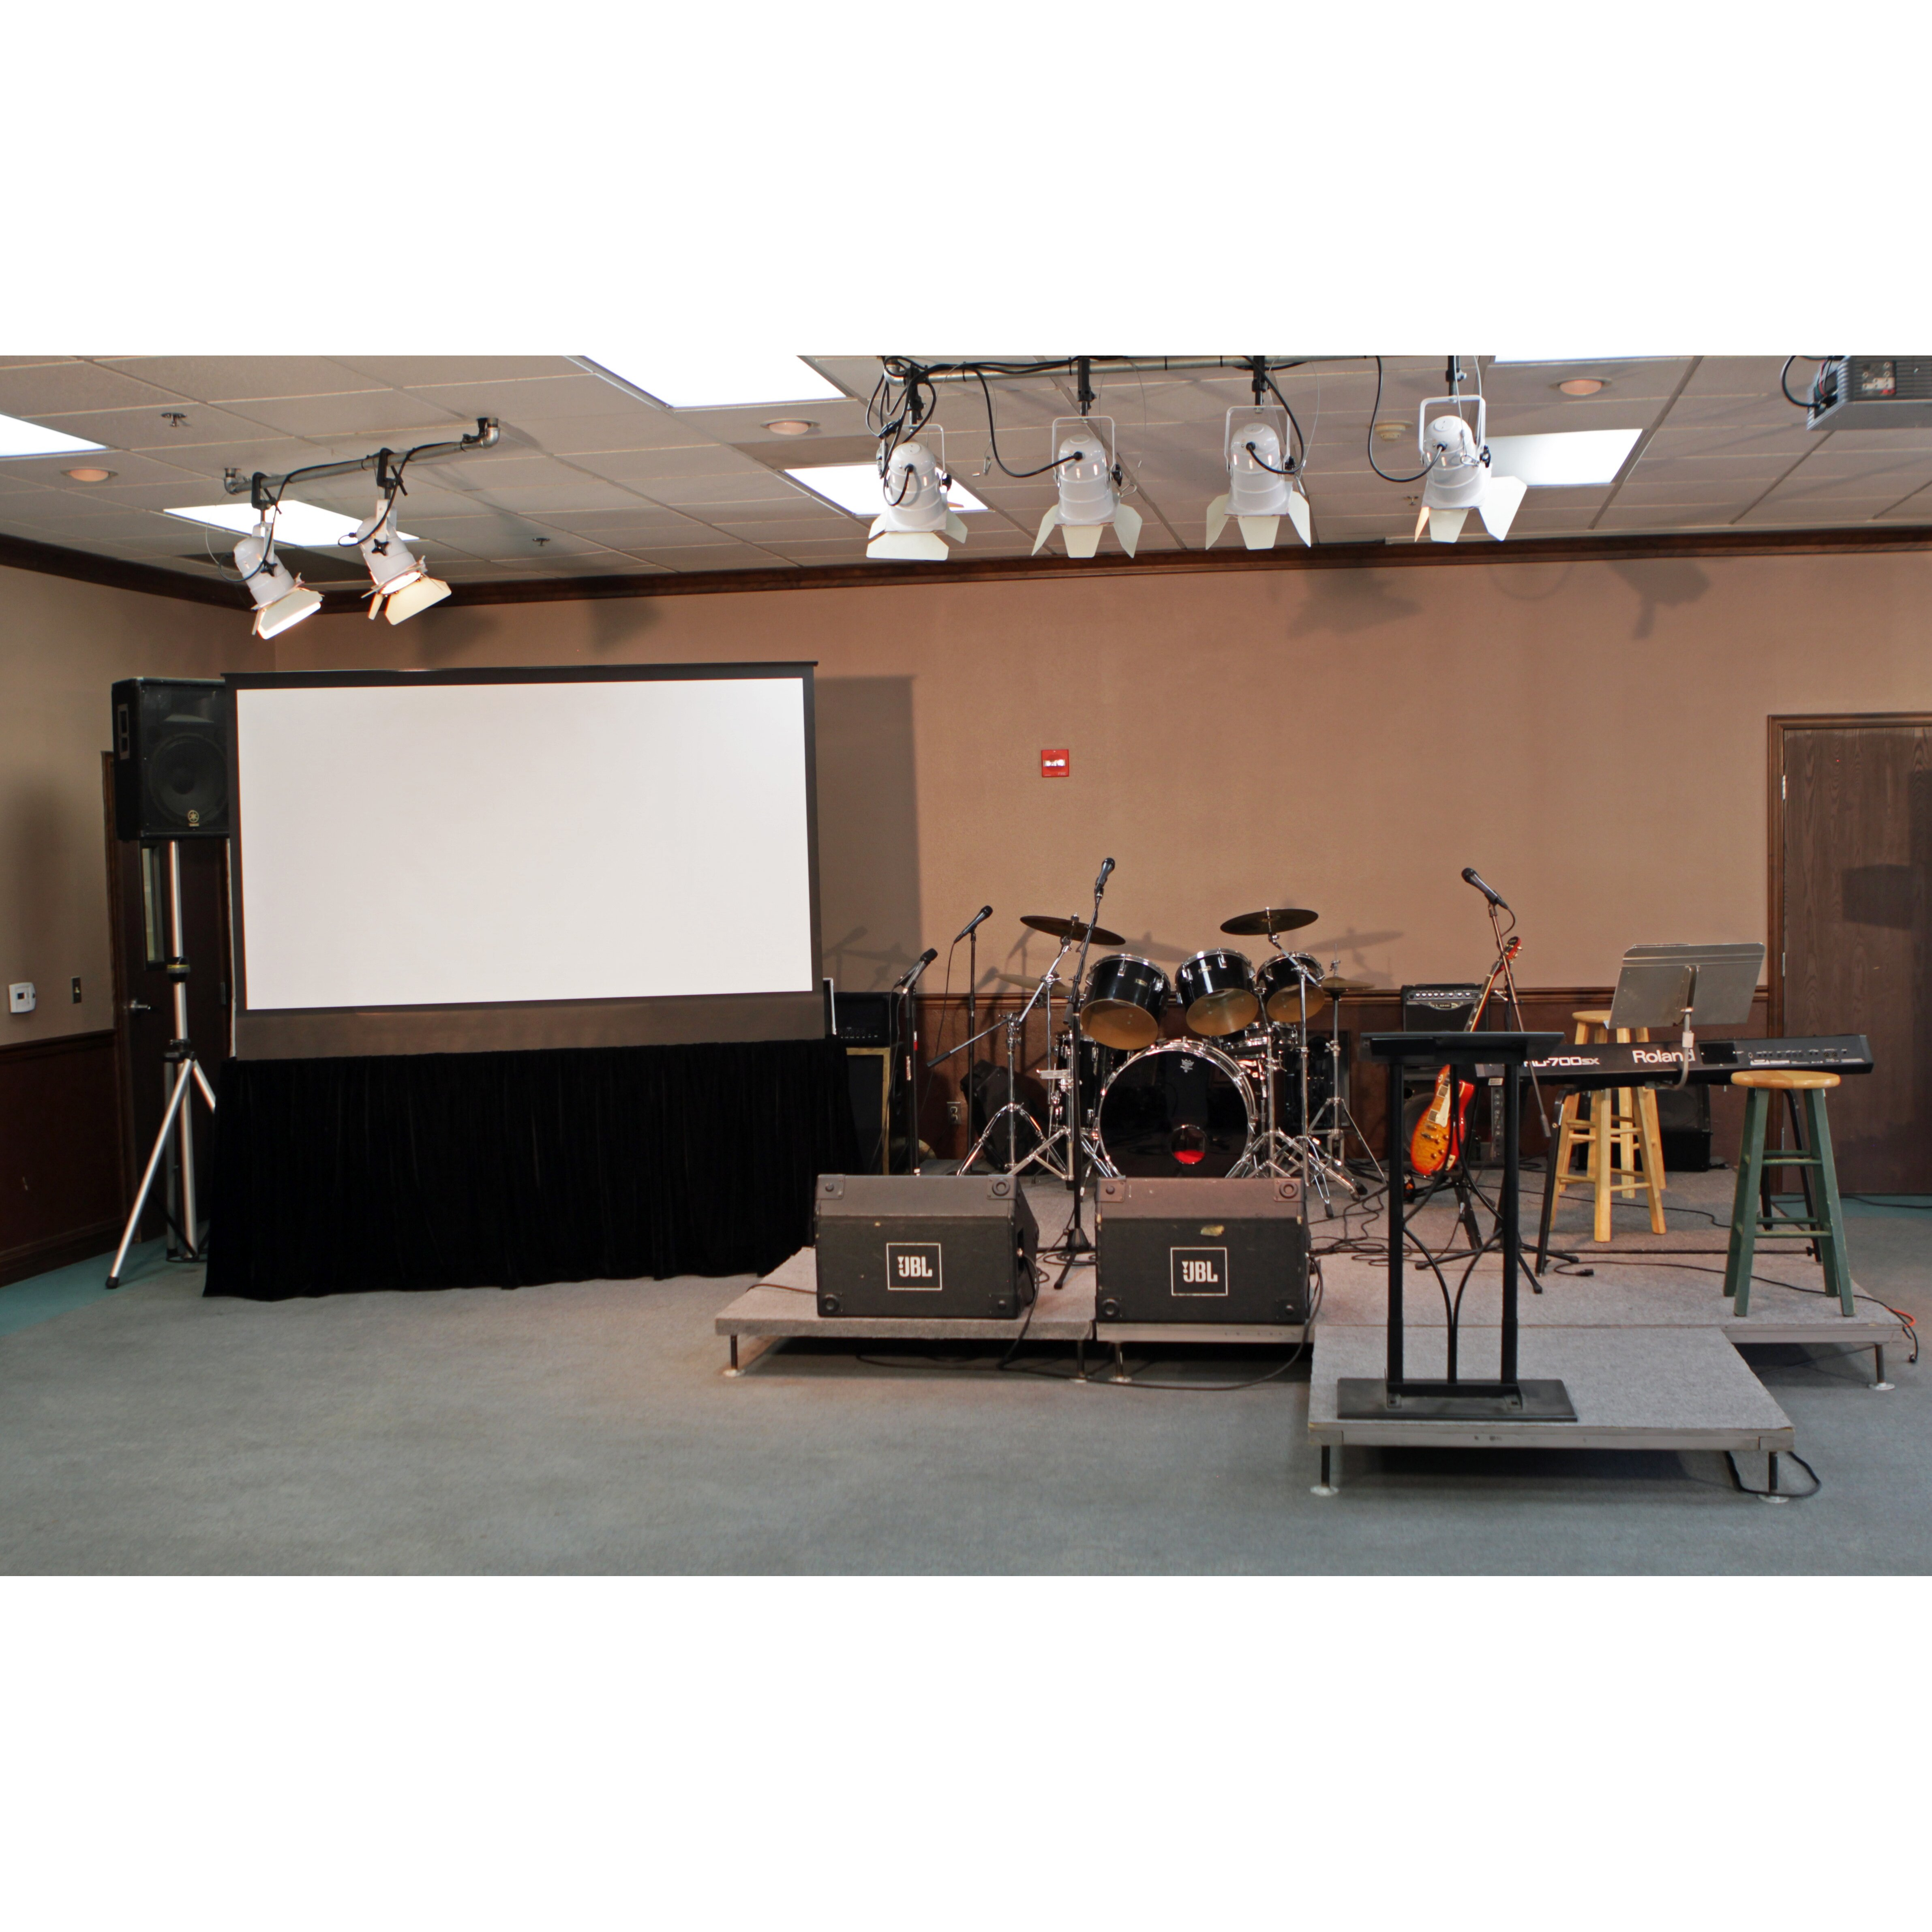 Kestrel stage white electric projection screen wayfair for Elite motorized projector screen